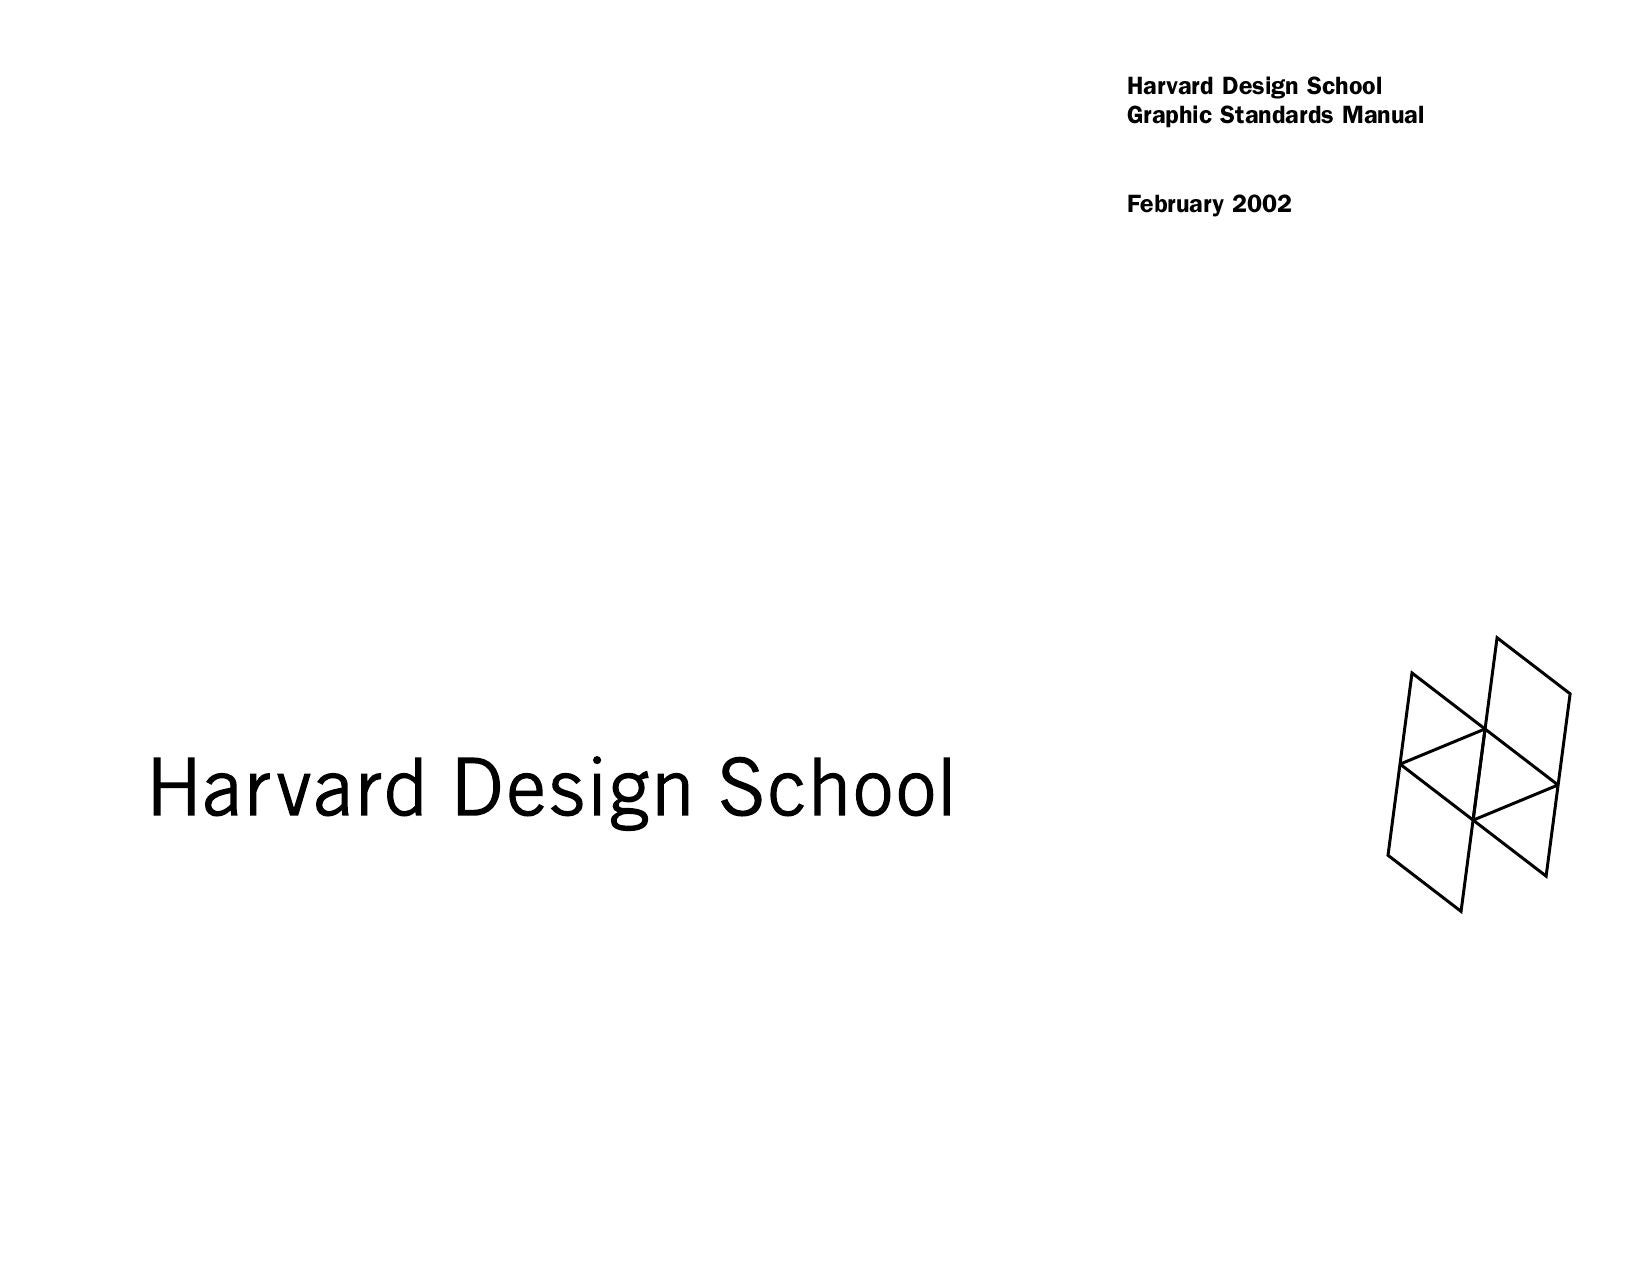 Harvard design school manual by gabychev alex issuu reheart Image collections